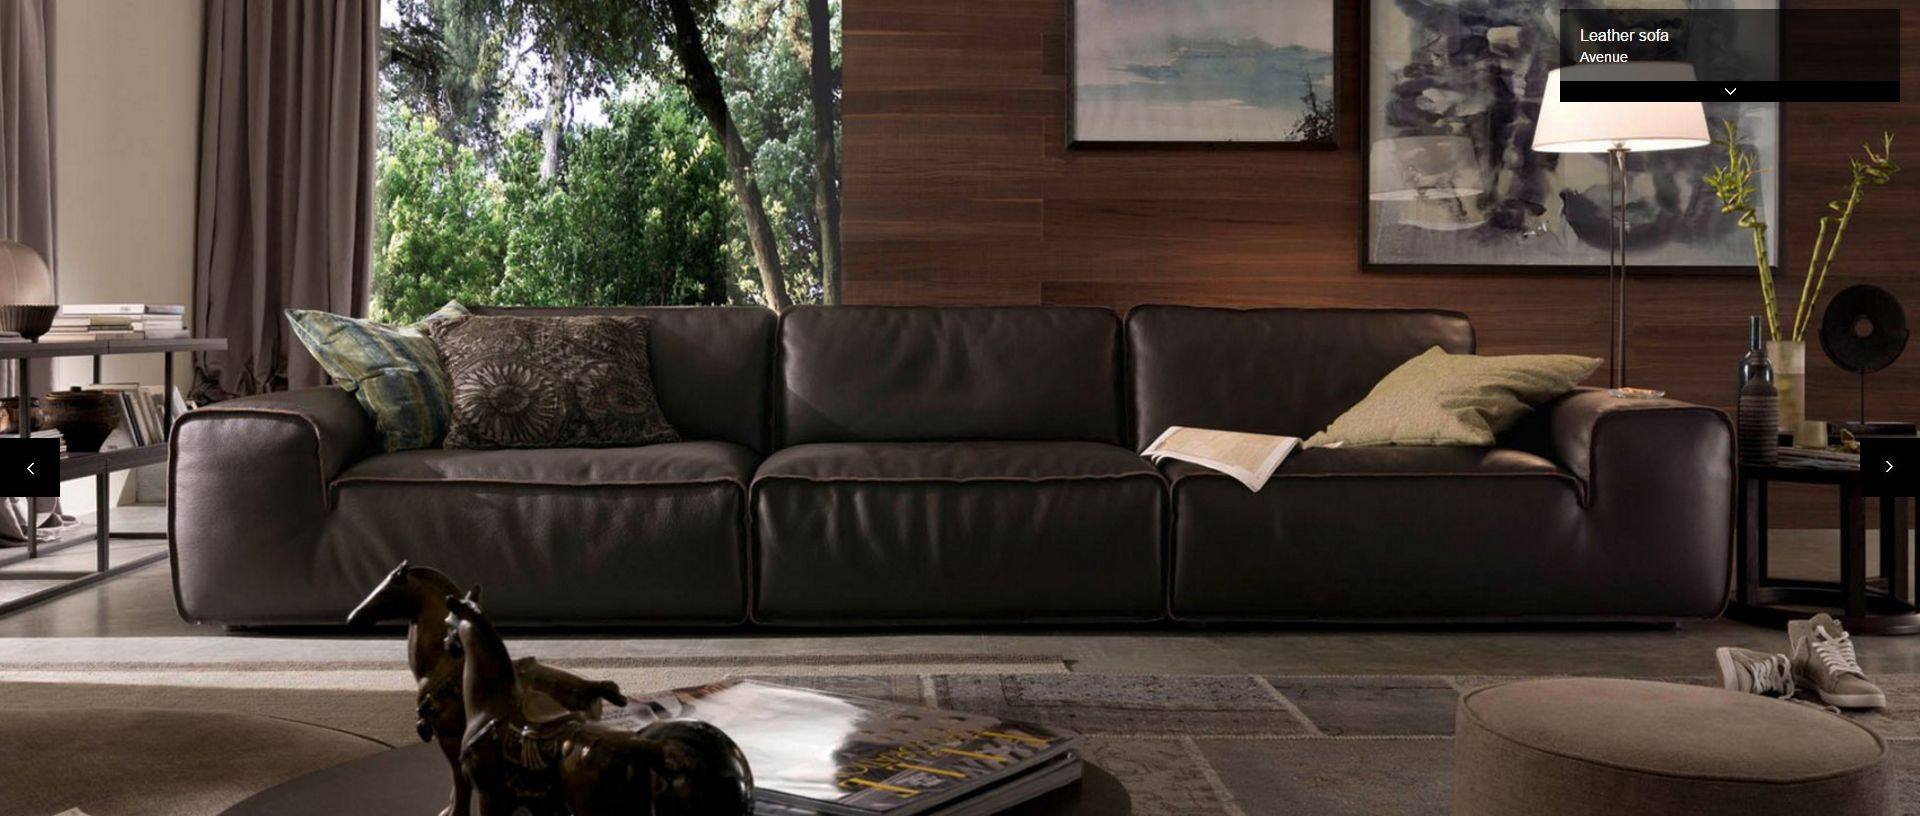 Divani chateau d ax leather sofa - Avenue Sectional By Chateau D Ax Italy Shown In Leather Visit Website